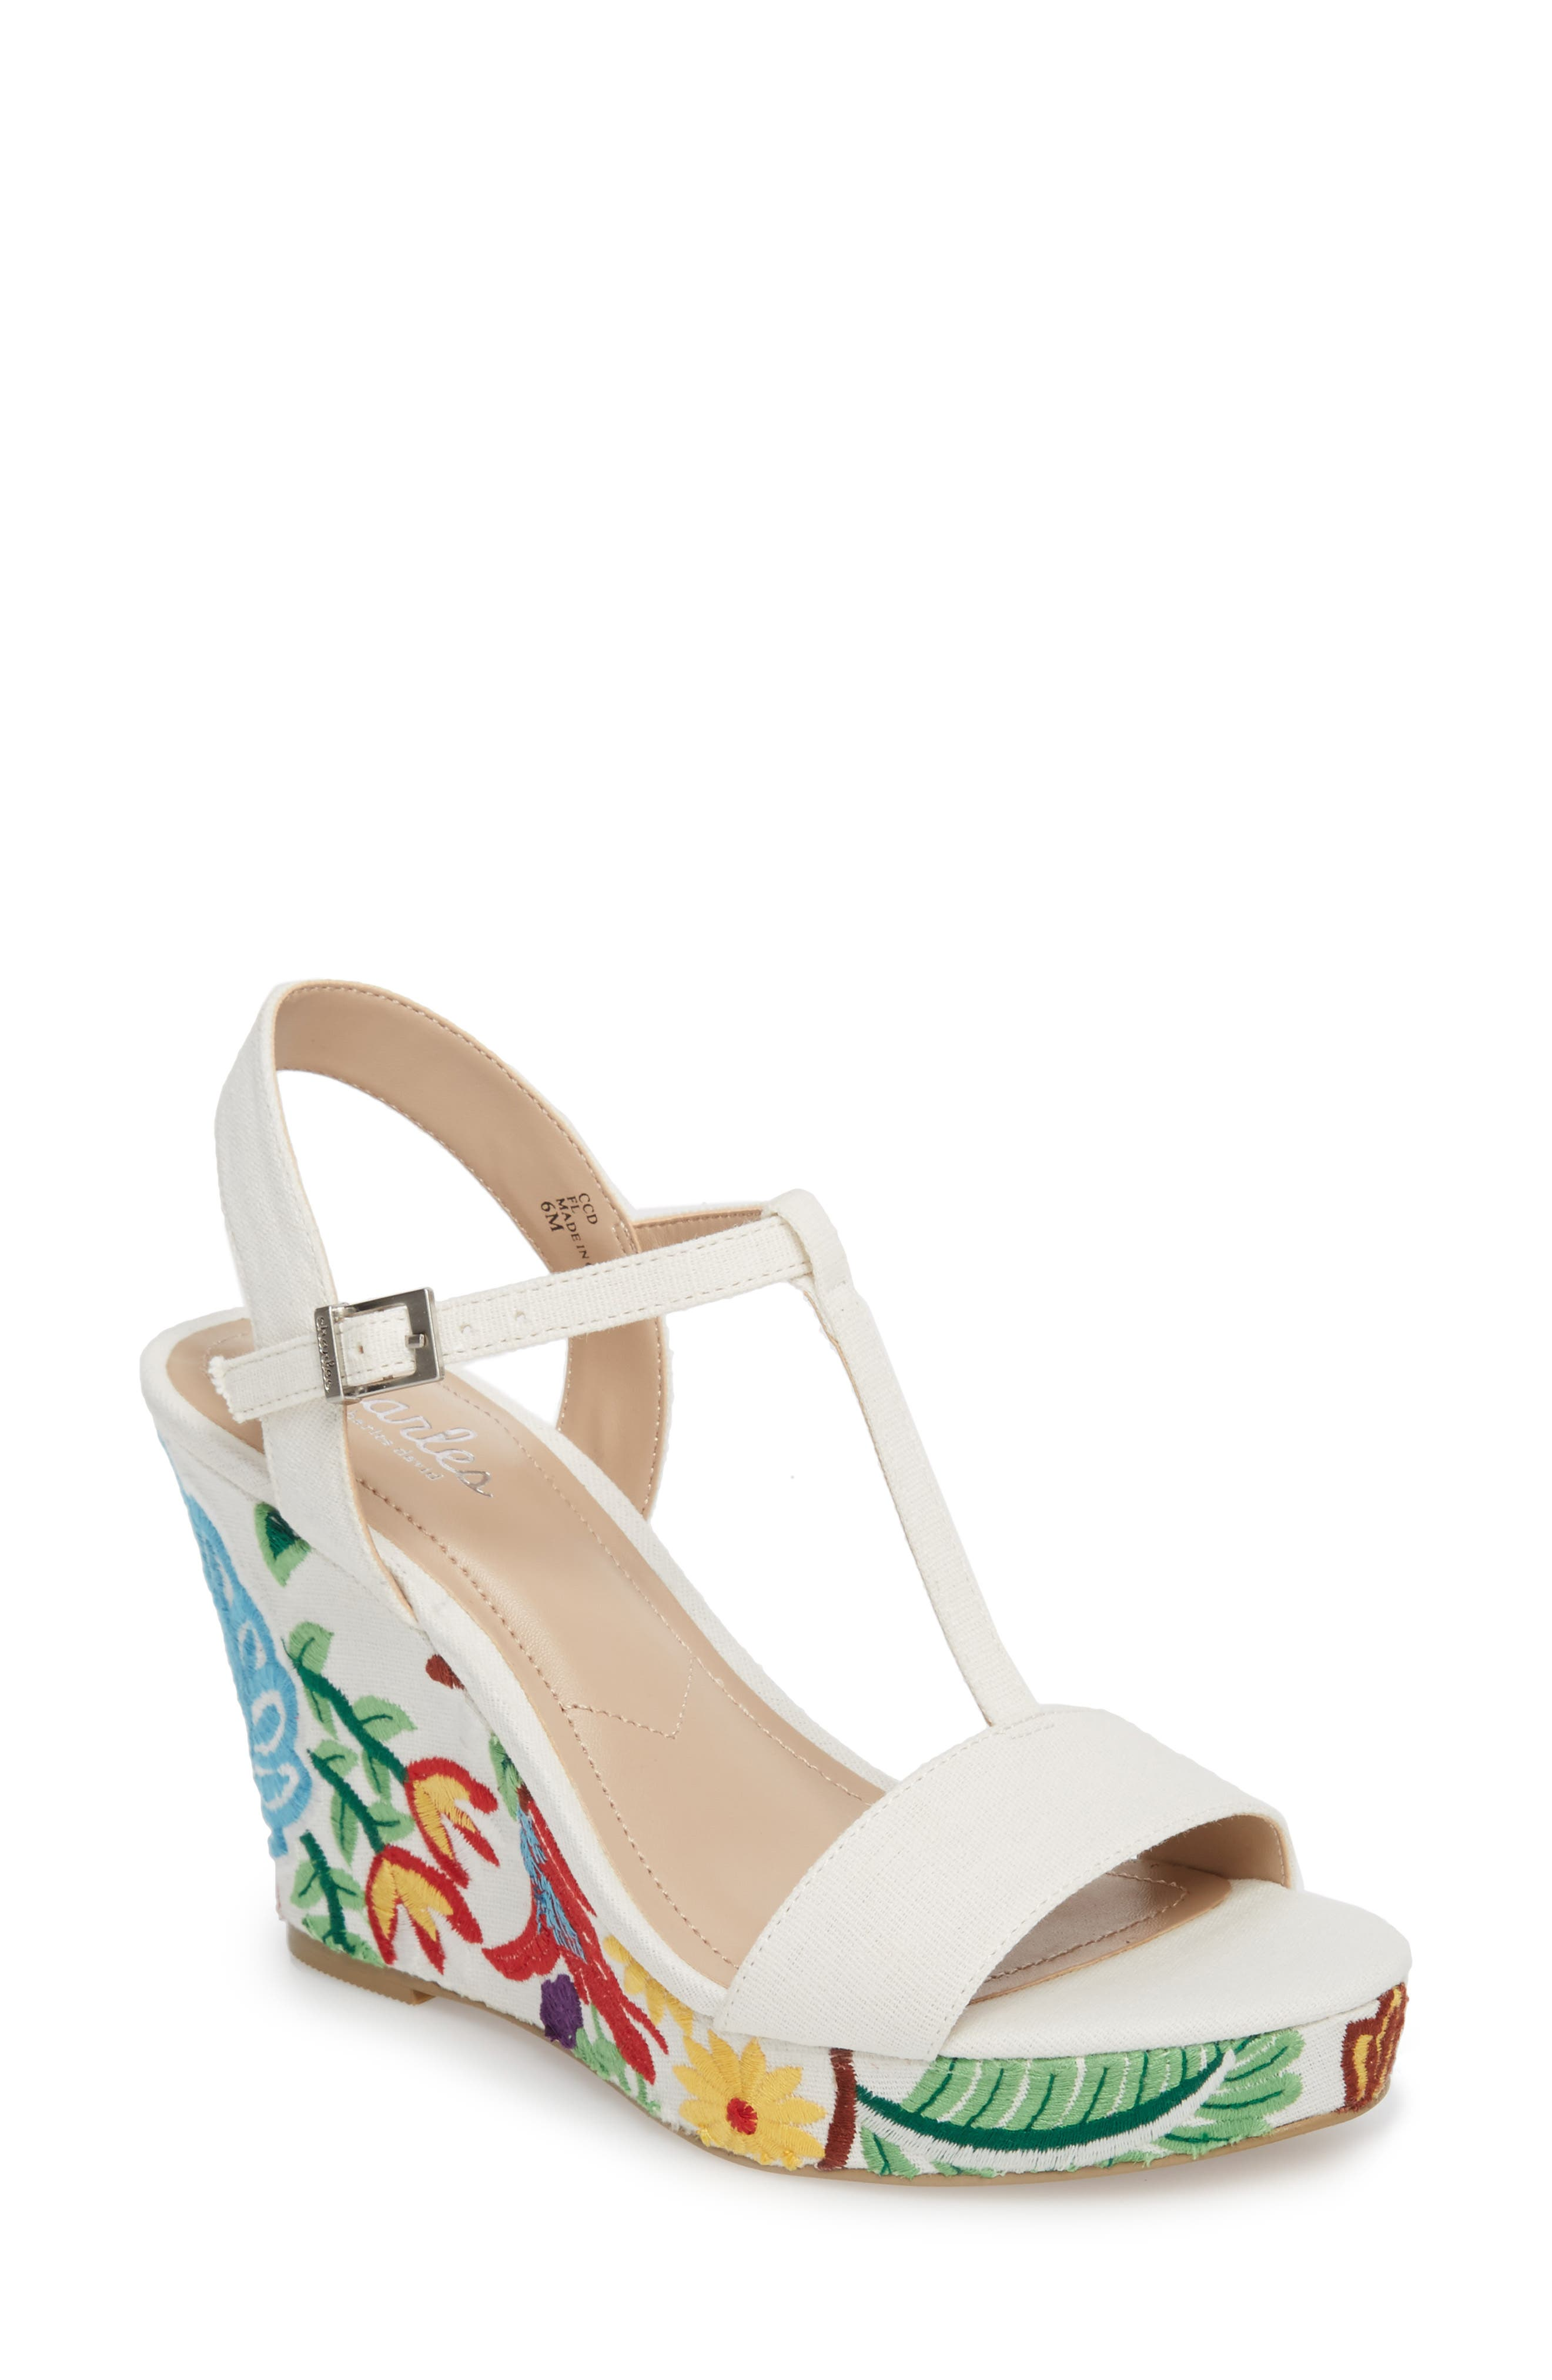 Alternate Image 1 Selected - Charles by Charles David Laney Embroidered Wedge Sandal (Women)